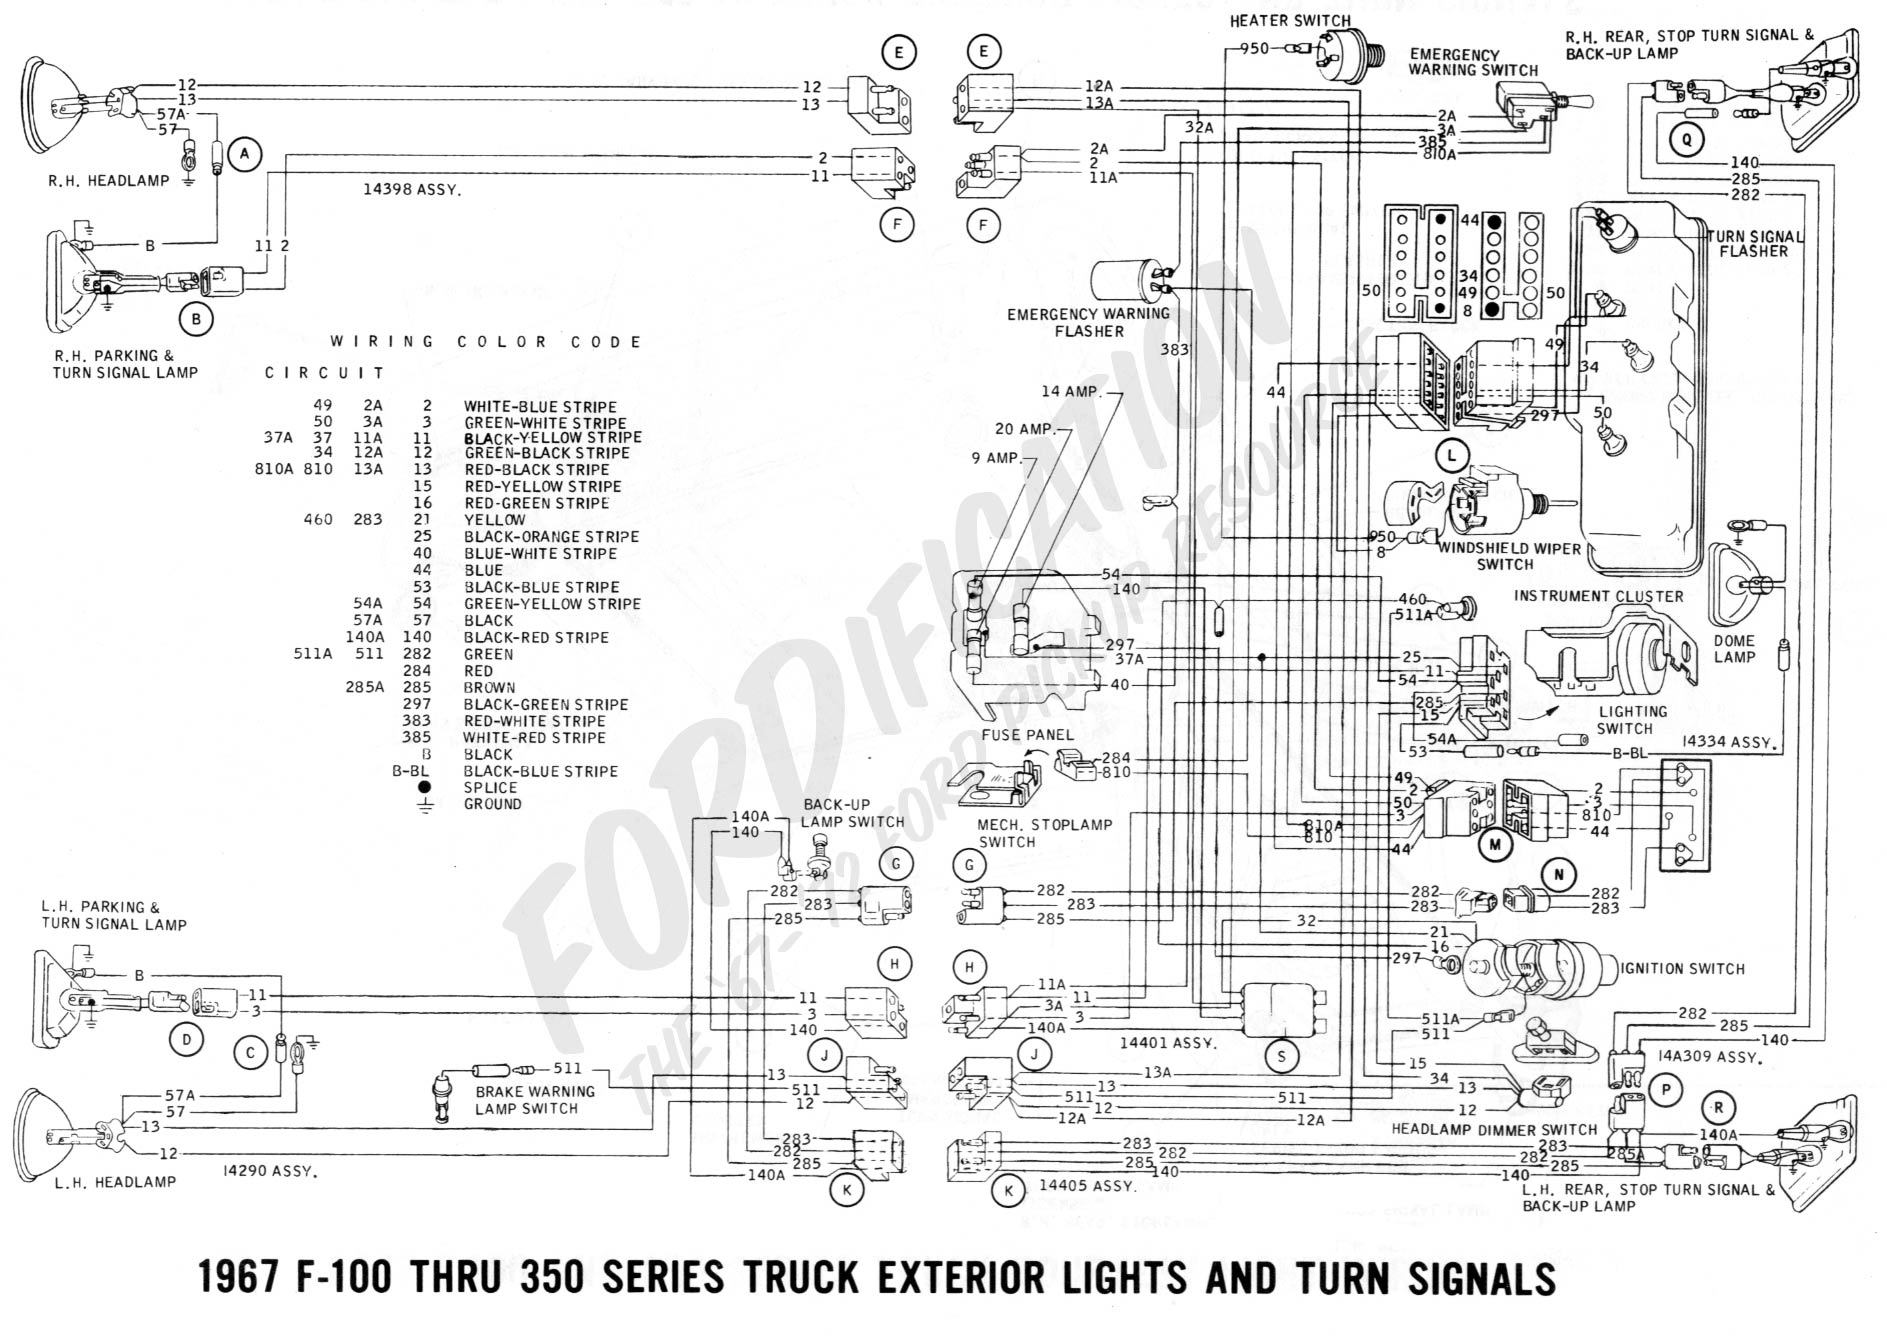 80 1967_exterior_lights_and_turn_signals_page_2_1db6c529c4c9567560e56d6320f993290ba5b803 1967 mustang wiring diagram efcaviation com 66 mustang wiring diagram at virtualis.co